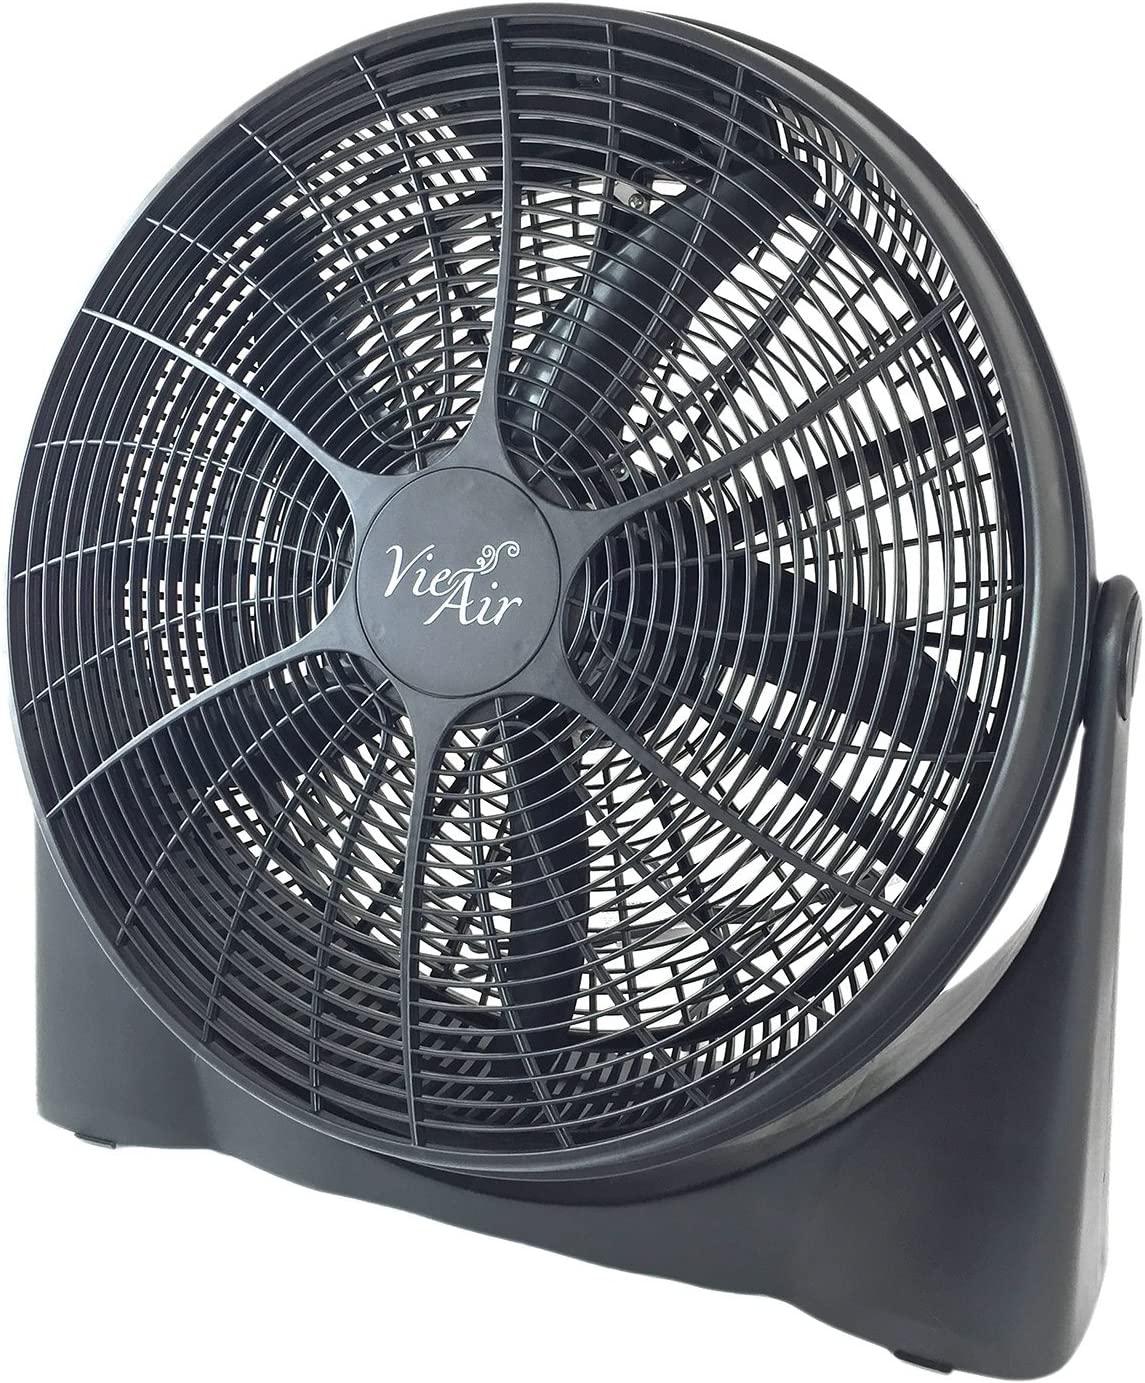 "Vie Air 20"" High Velocity Floor Fan"